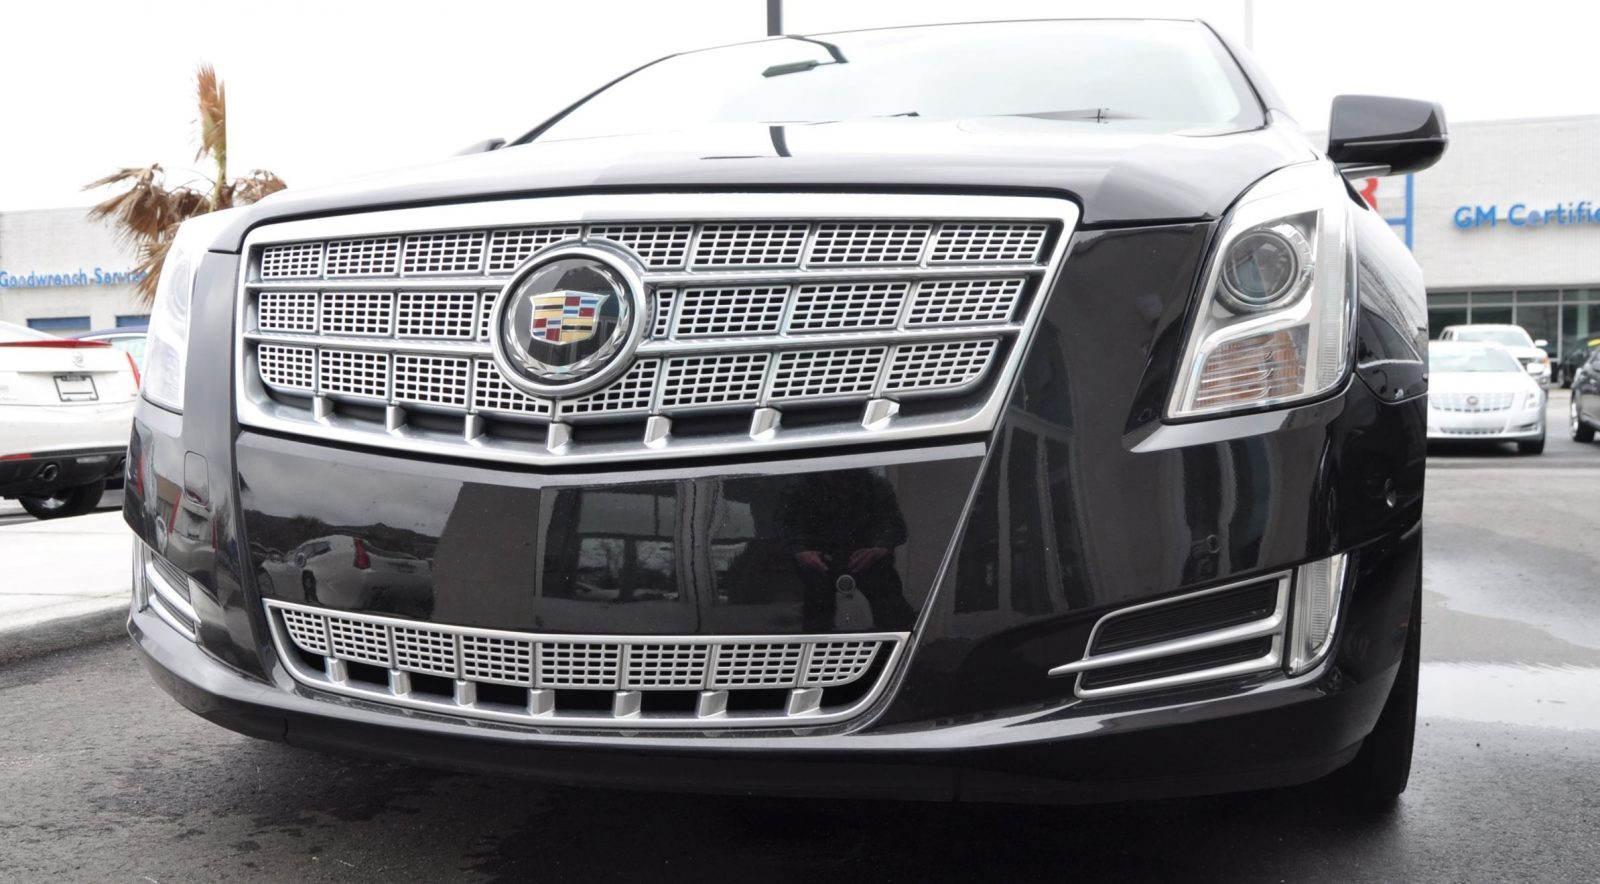 2014 Cadillac XTS4 Platinum Vsport -- First Drive Video and Photos 11